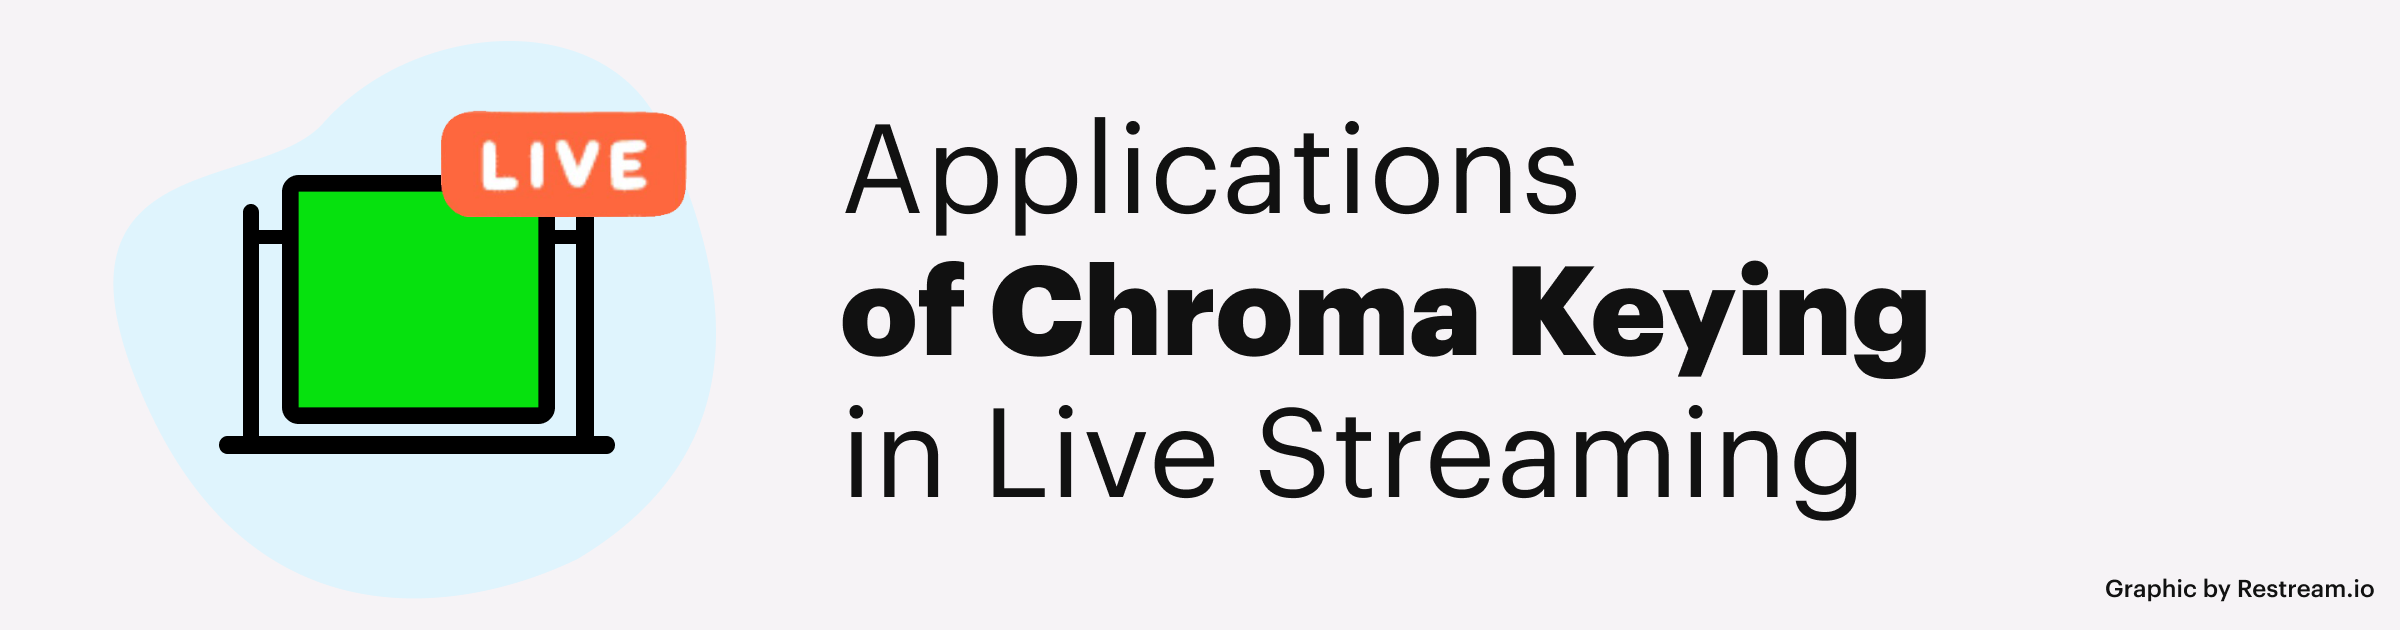 Applications of Chroma Keying in Live Streaming